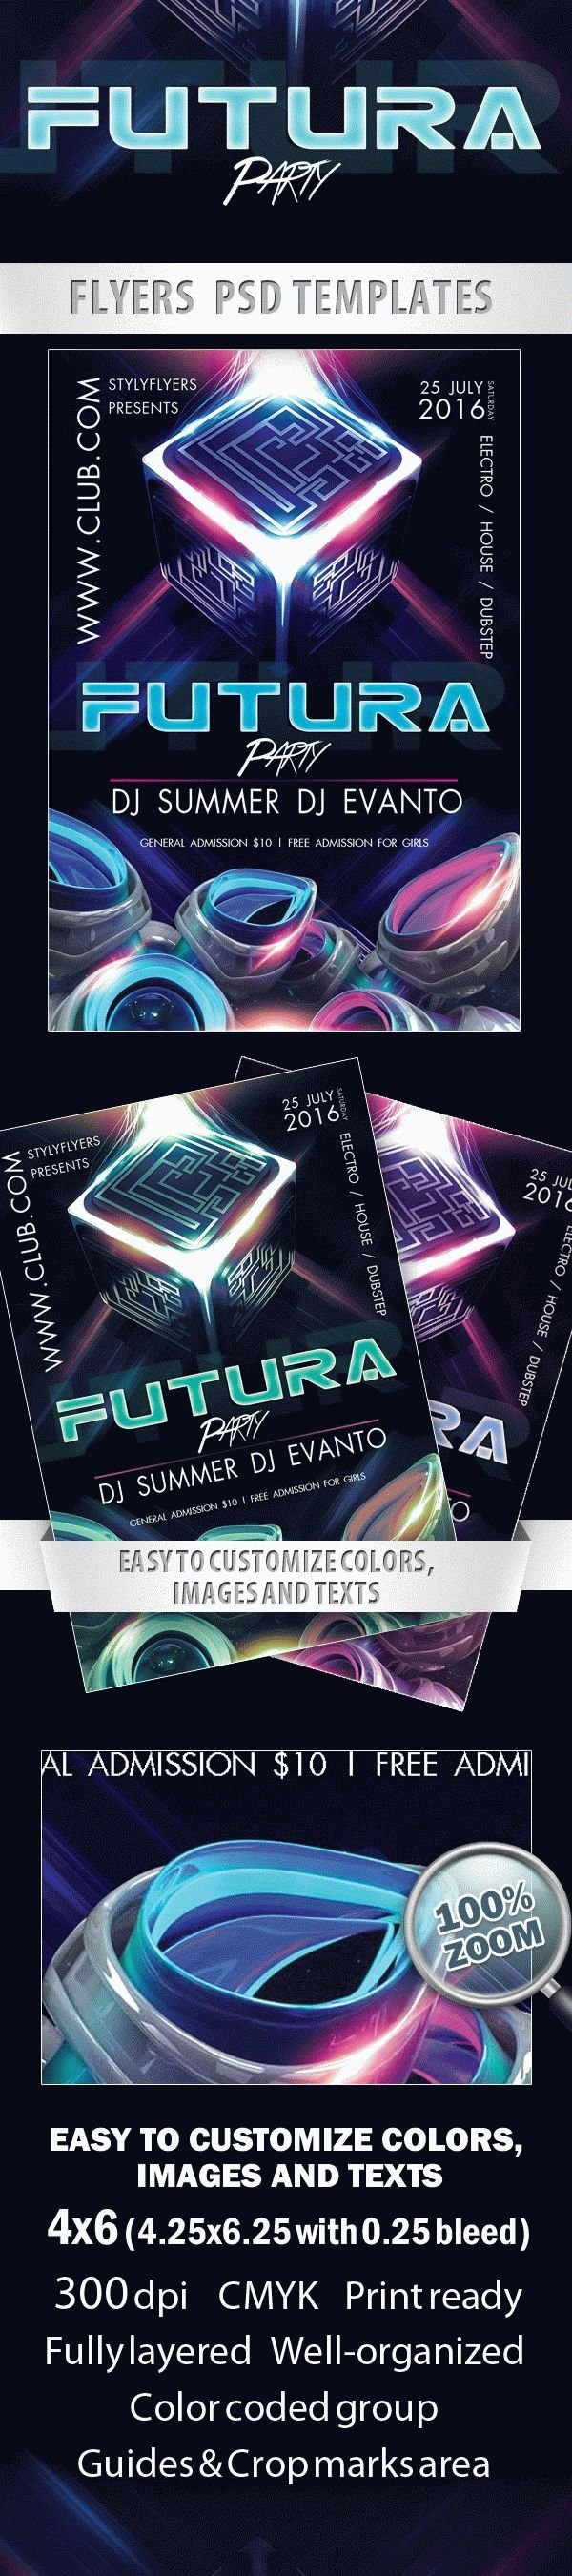 Futura Party  Free Flyer PSD Template